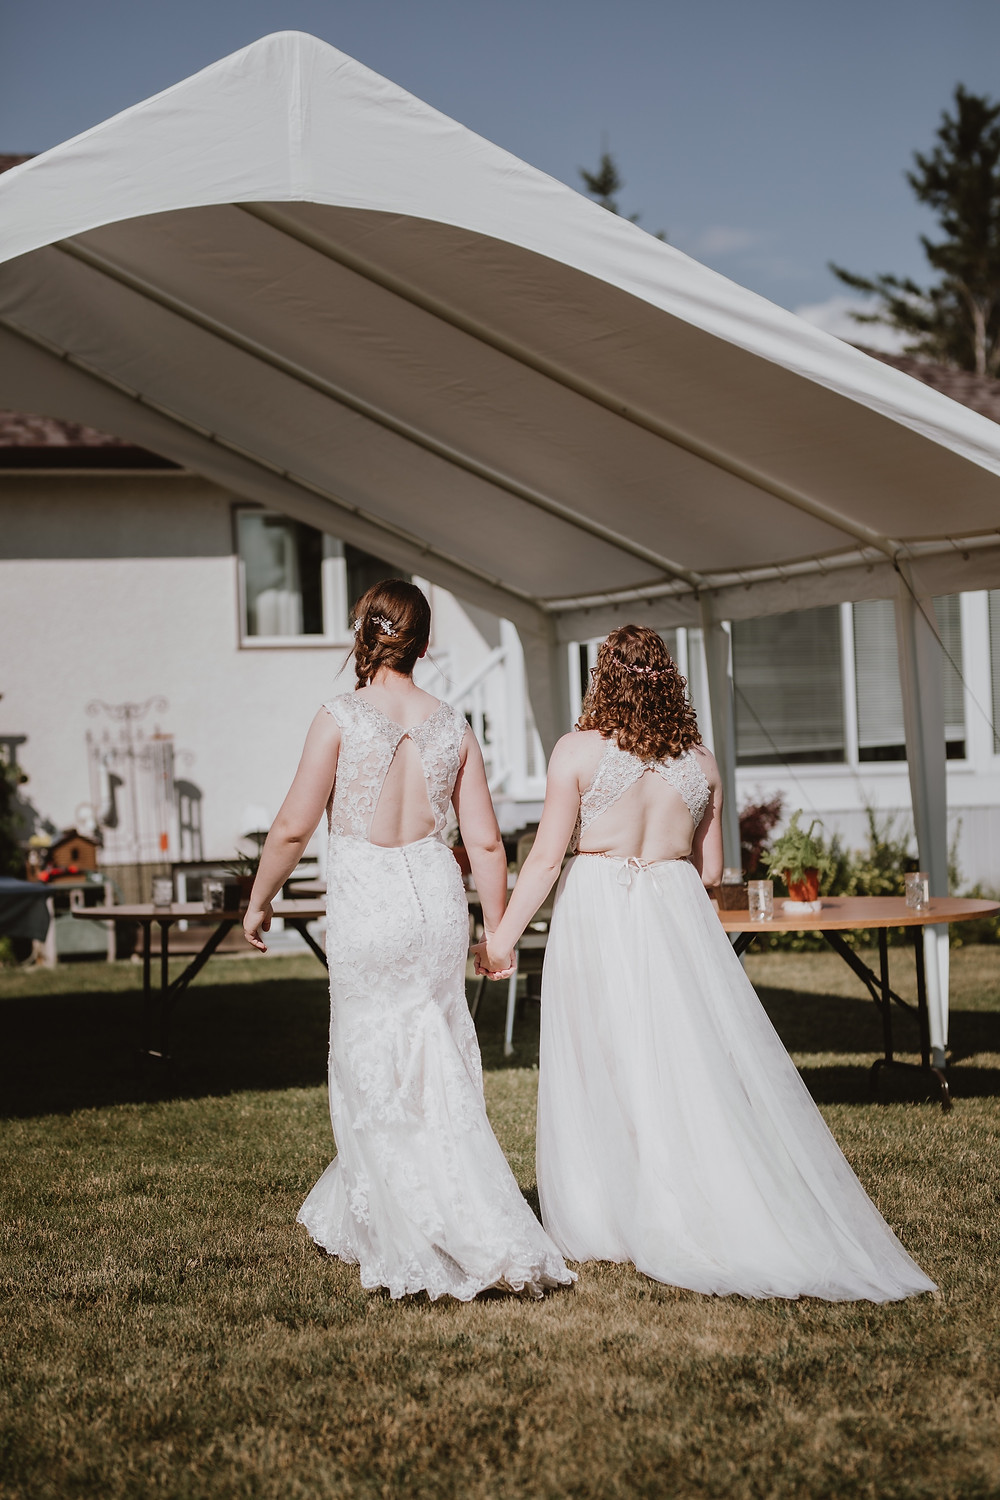 Brides walk from their ceremony to reception tent.